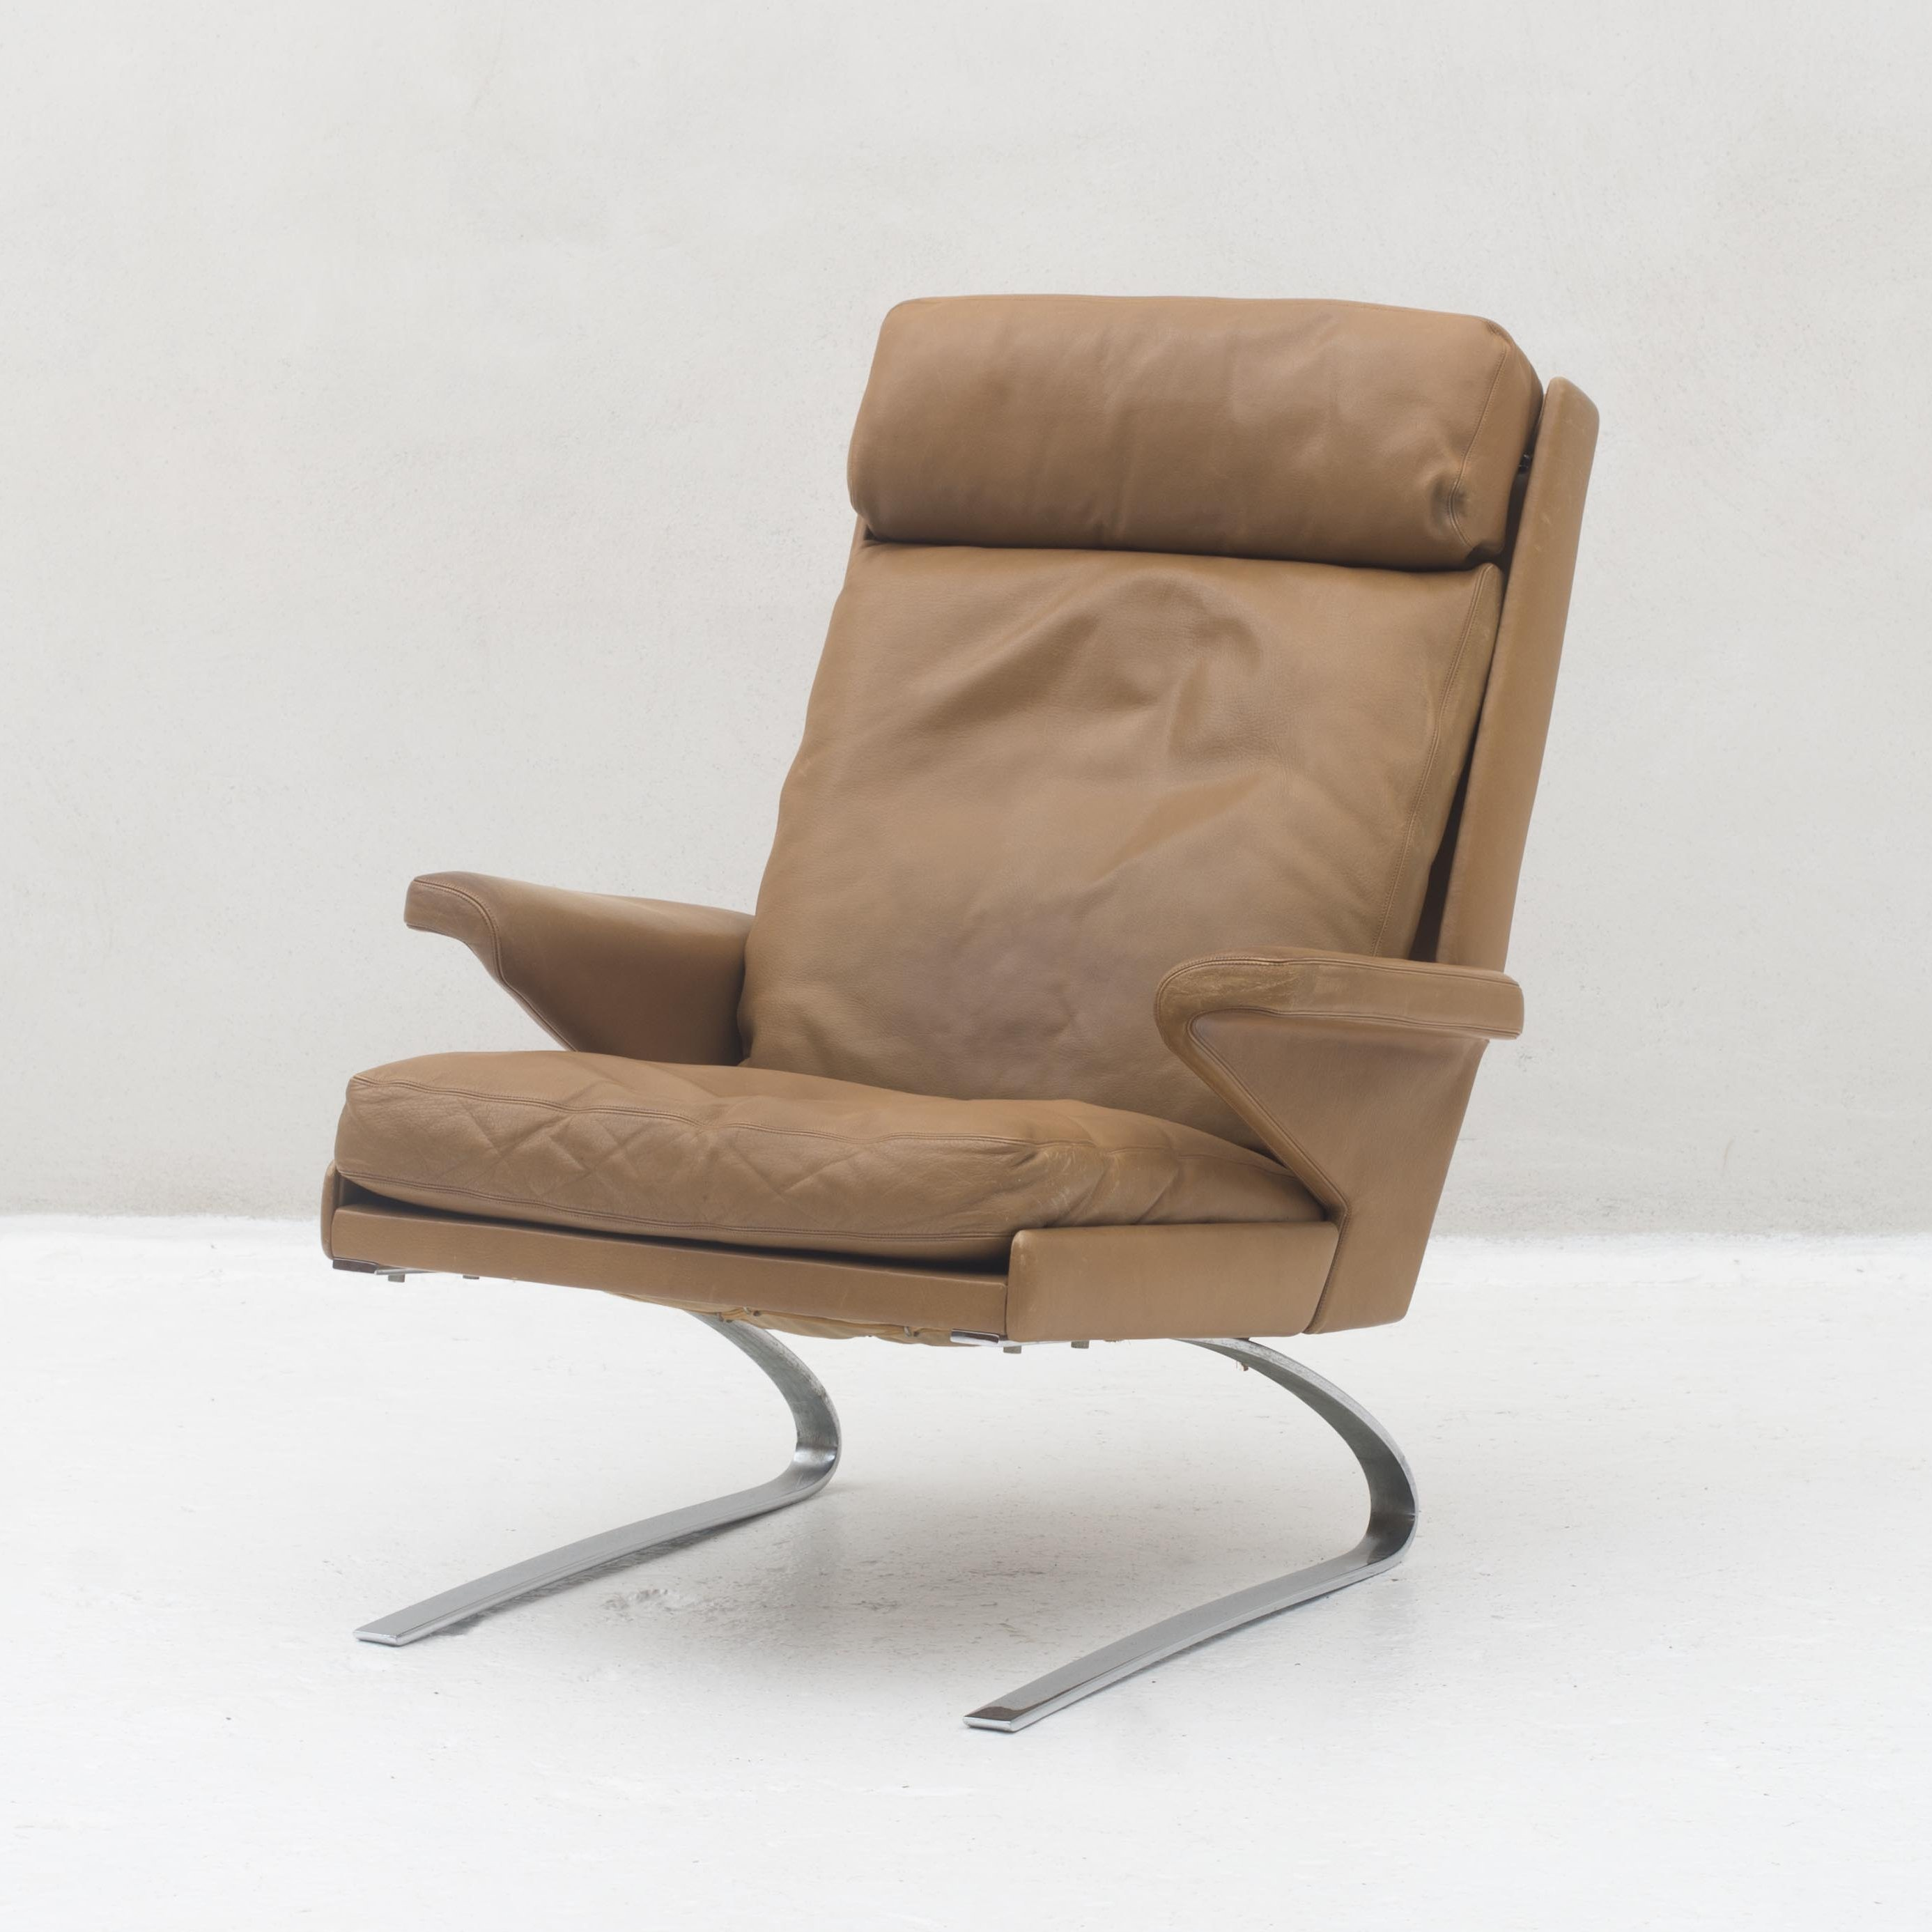 Nice Swing Lounge Chair By Reinhold Adolf U0026 Hans Jürgen Schräpfer For COR,  Germany